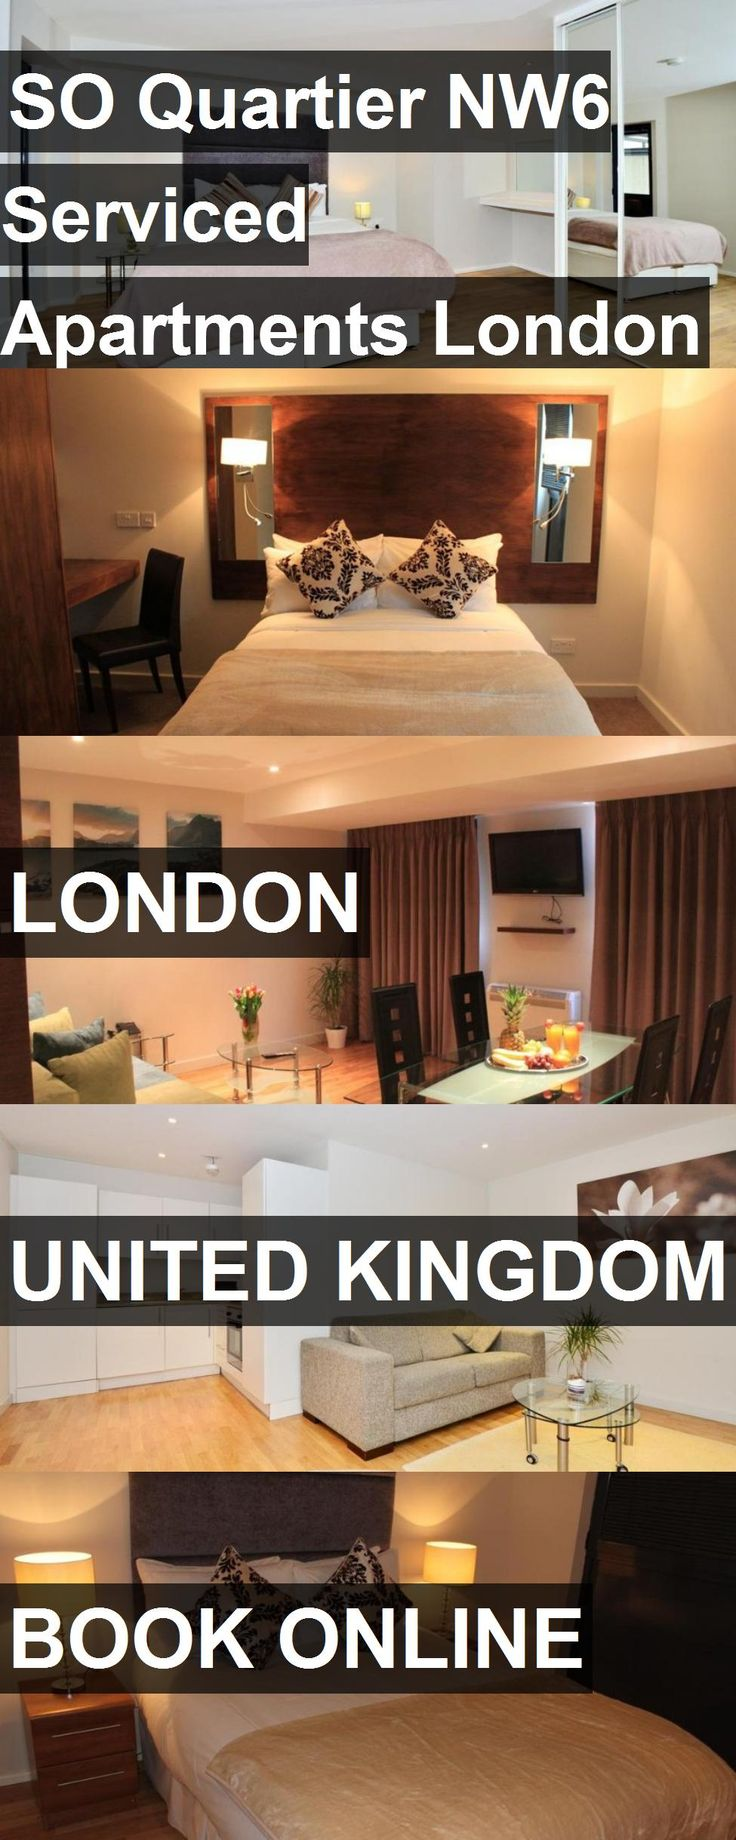 Hotel SO Quartier NW6 Serviced Apartments London in London, United Kingdom. For more information, photos, reviews and best prices please follow the link. #UnitedKingdom #London #SOQuartierNW6ServicedApartmentsLondon #hotel #travel #vacation